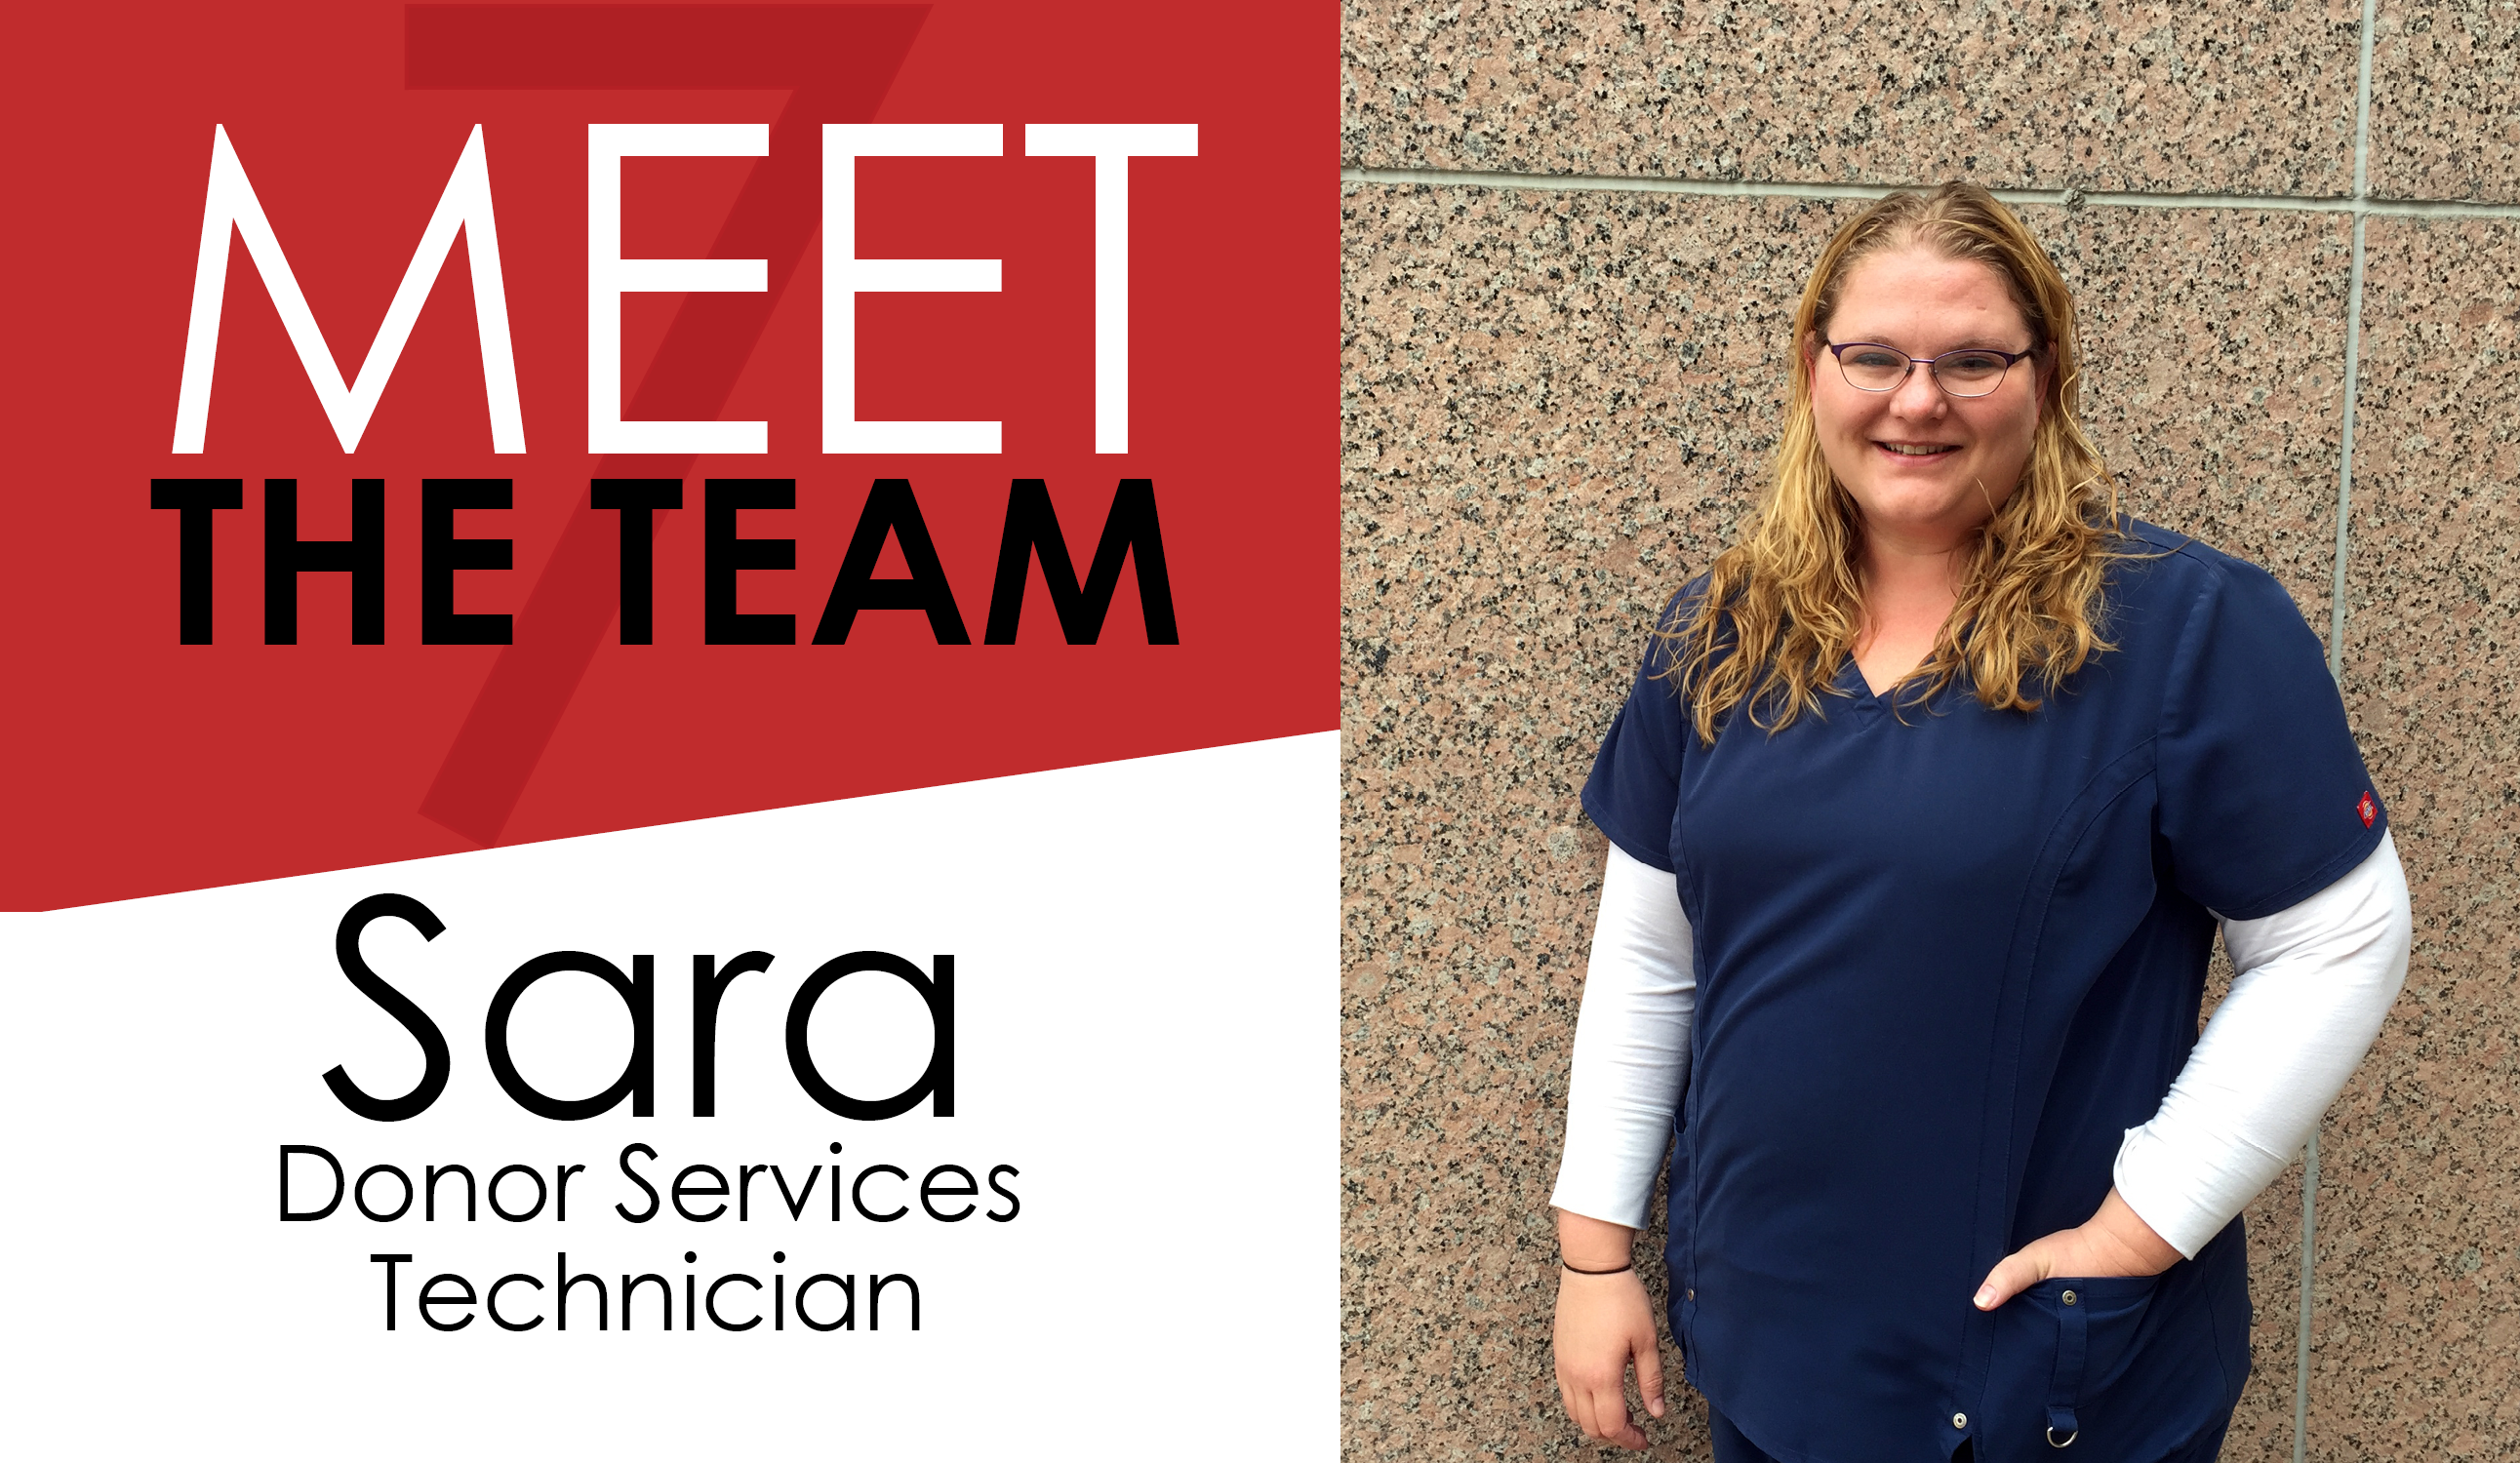 Meet the team - Sara